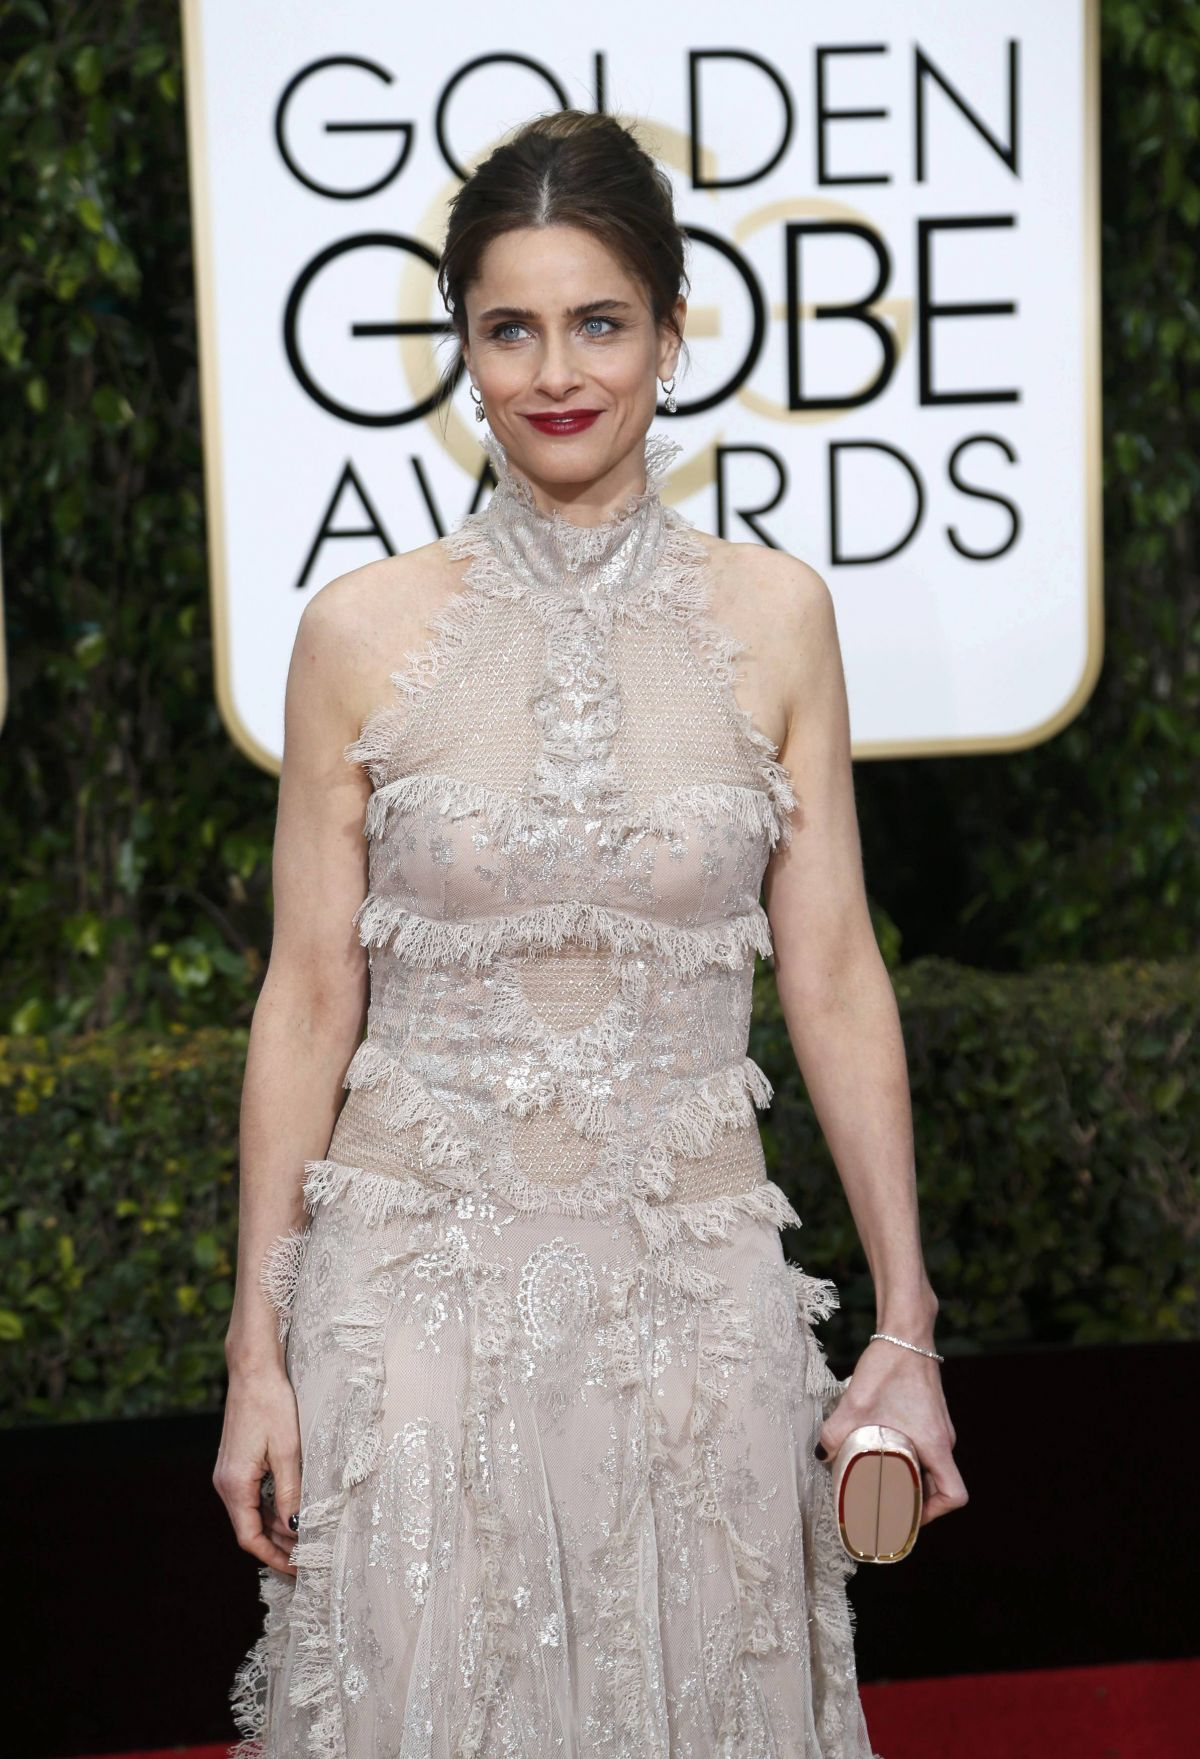 AMANDA PEET at 73rd Annual Golden Globe Awards in Beverly Hills 10/01/2016